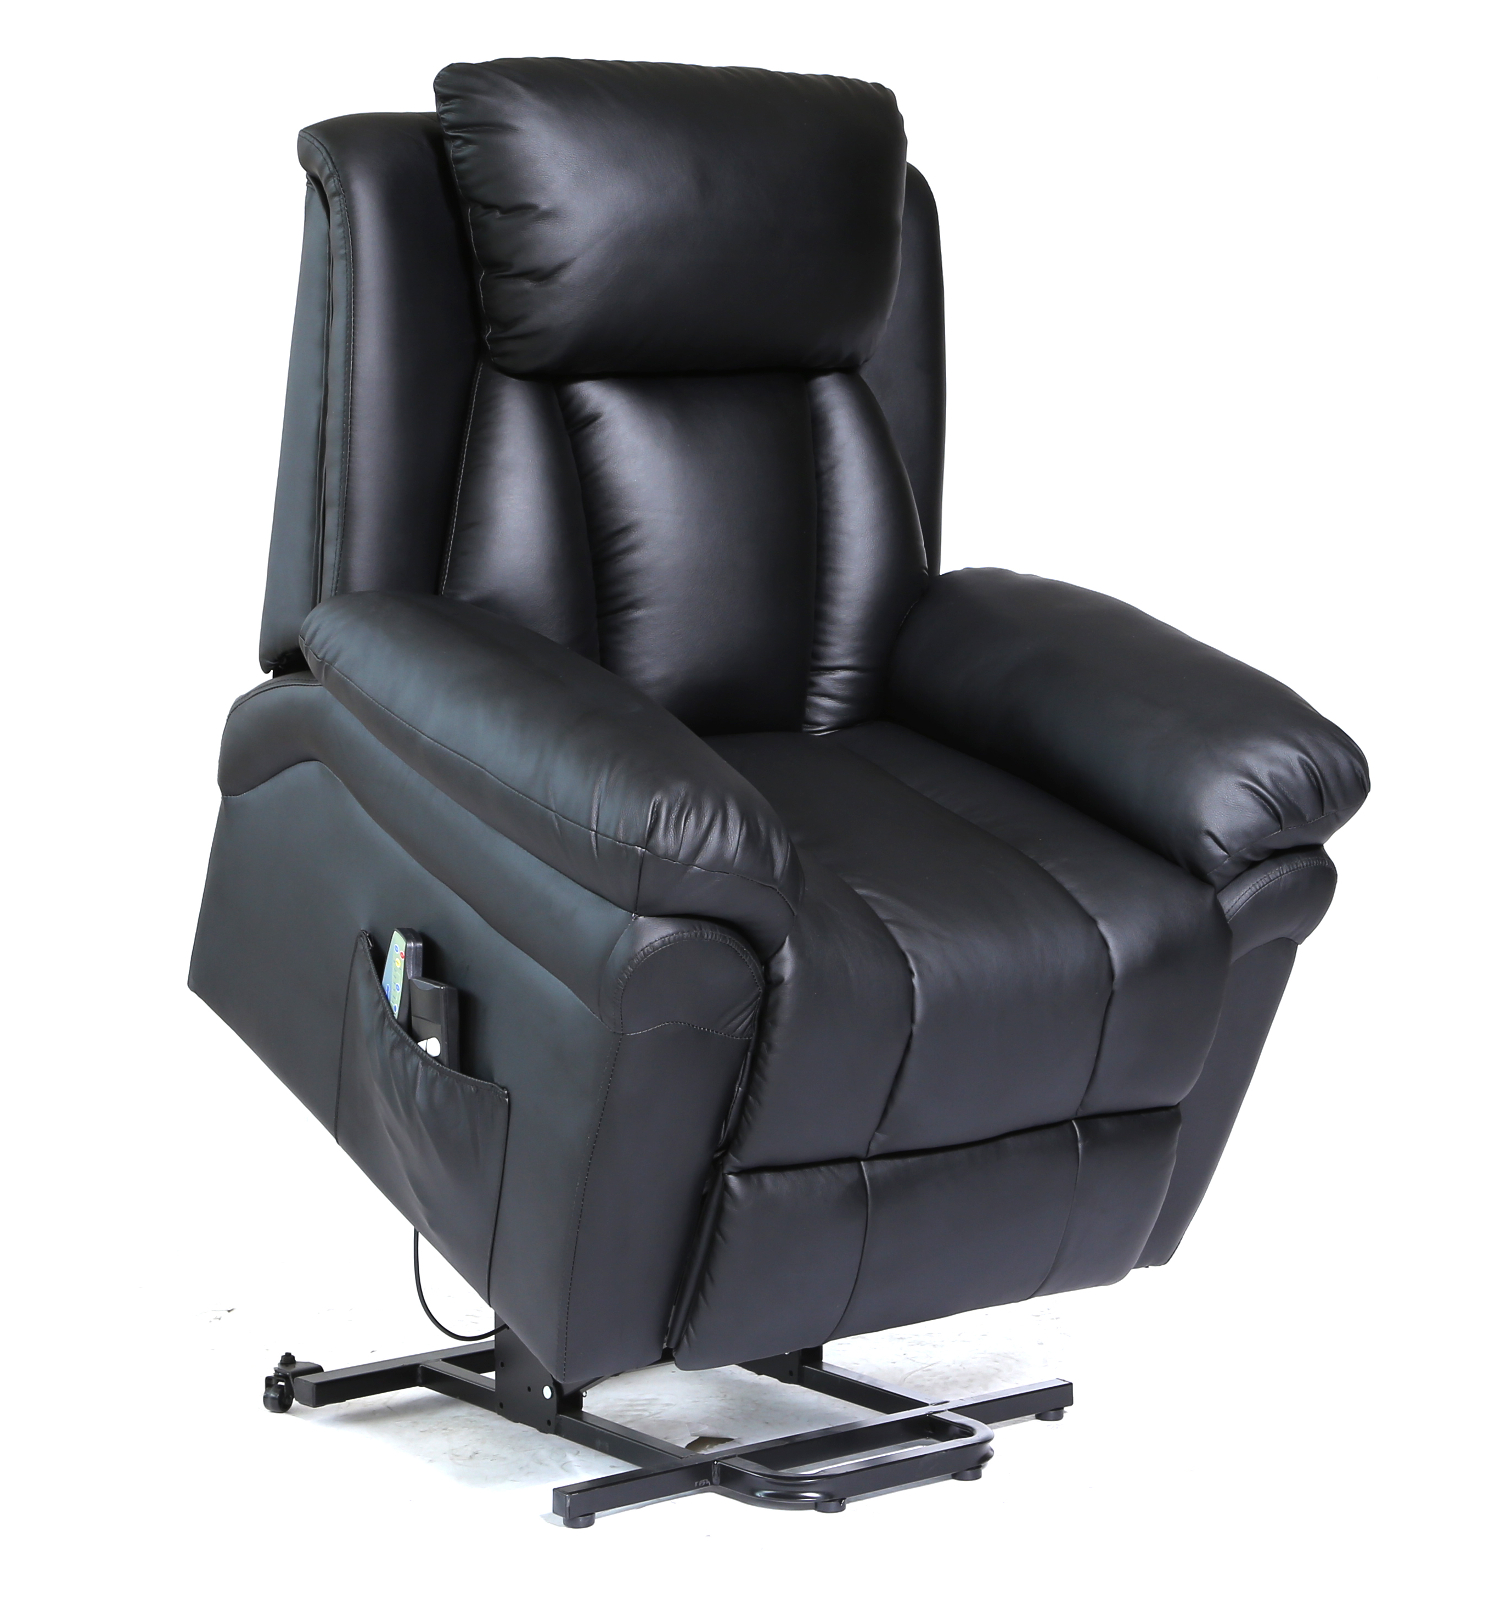 gray leather sofa recliner cushion ideas for white 10 in 1 massage swivel chair & power lift ...